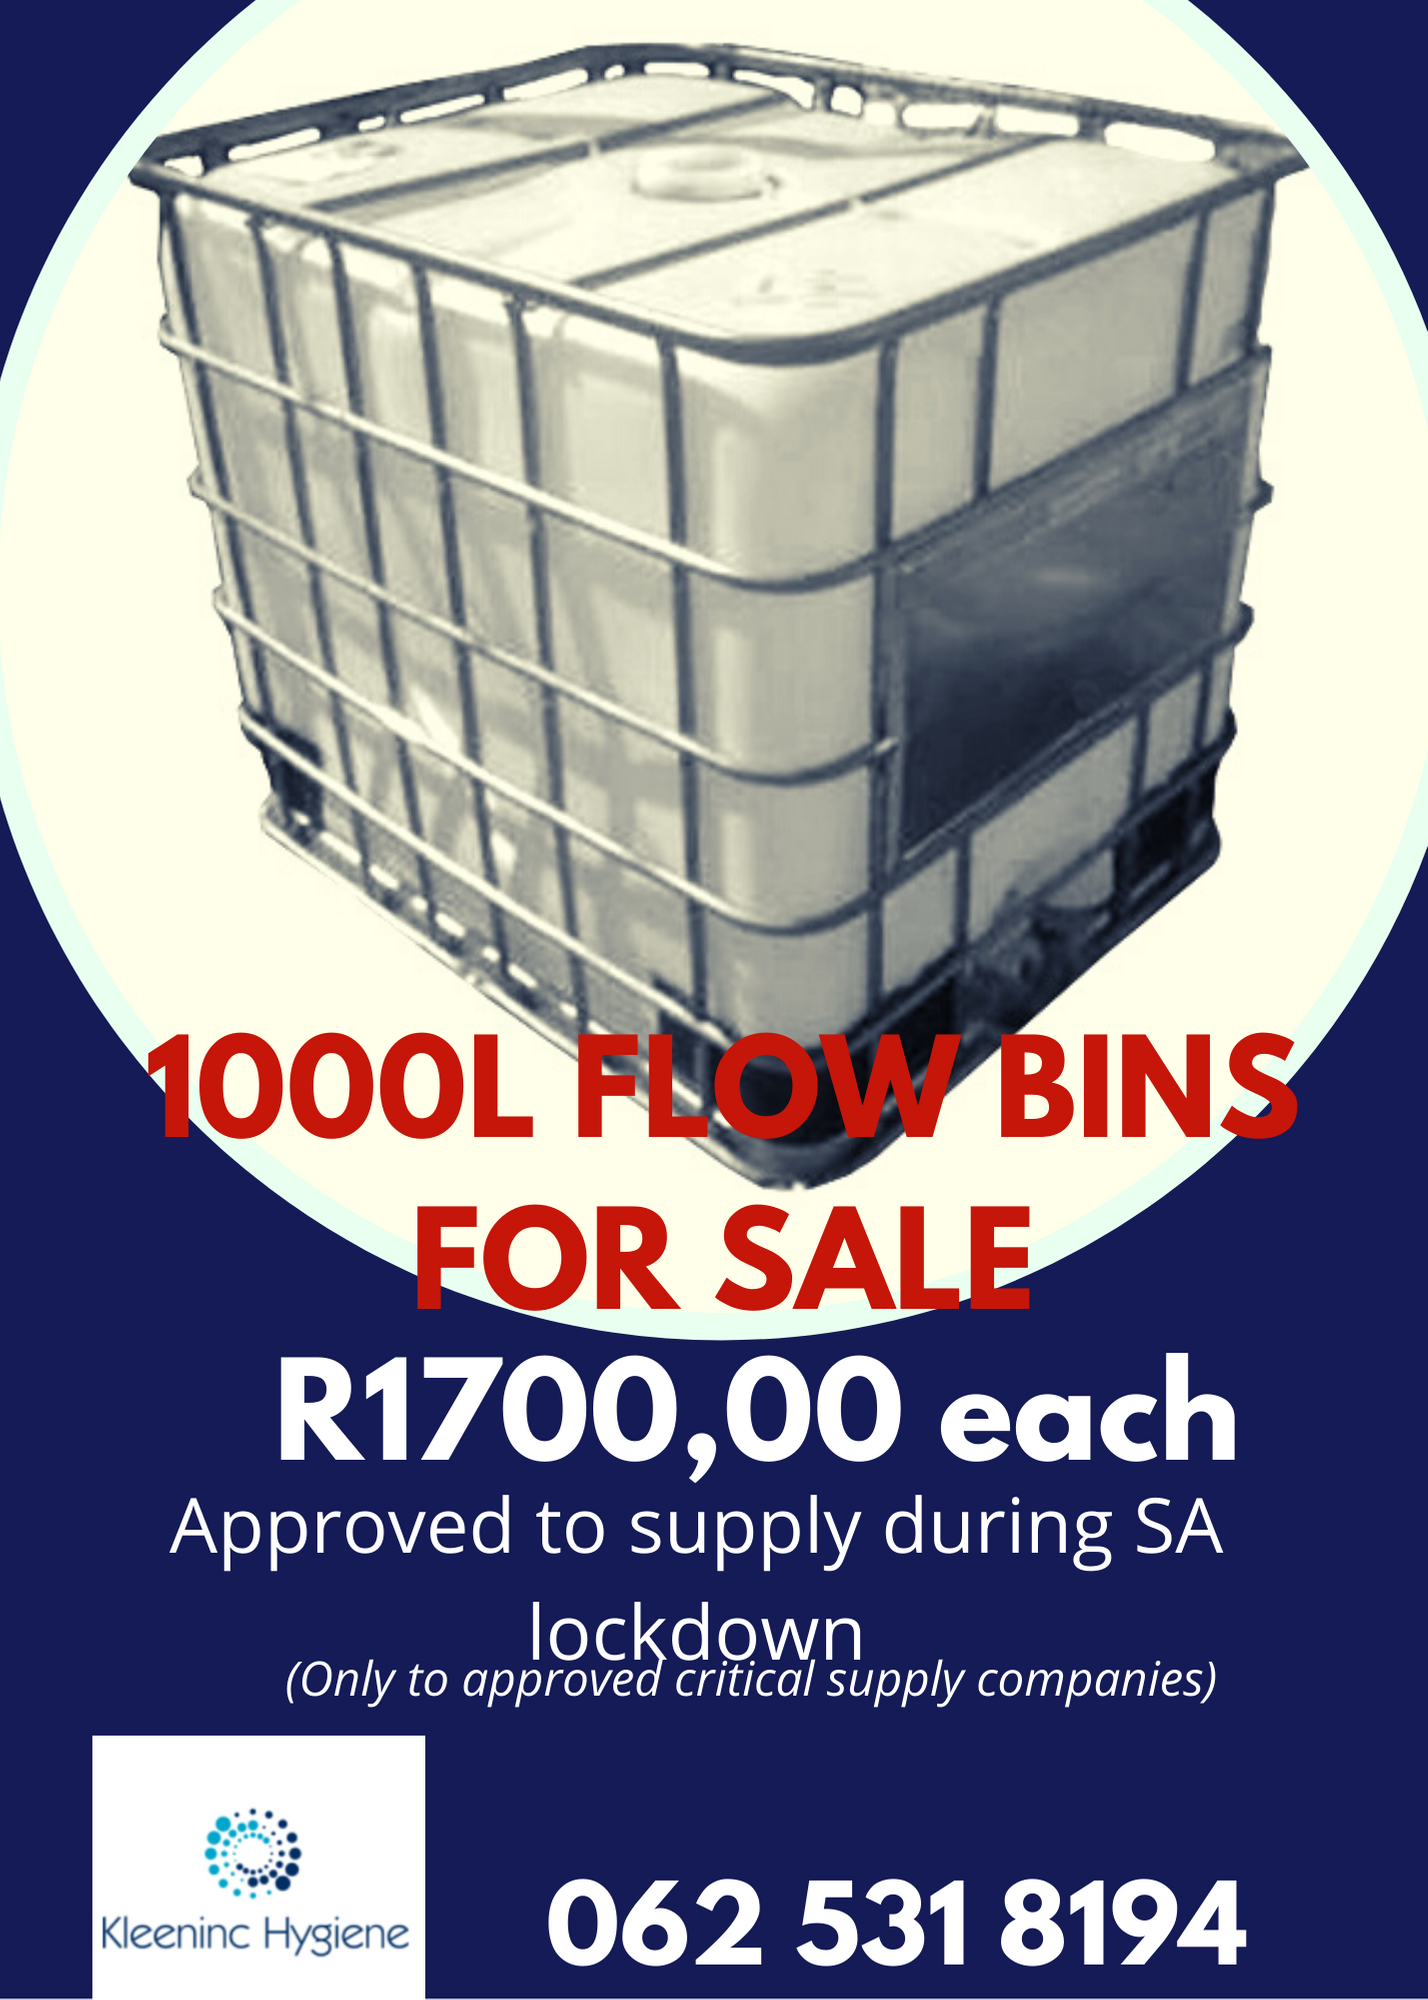 Re-Conditioned Flowbins for Sale - R1700